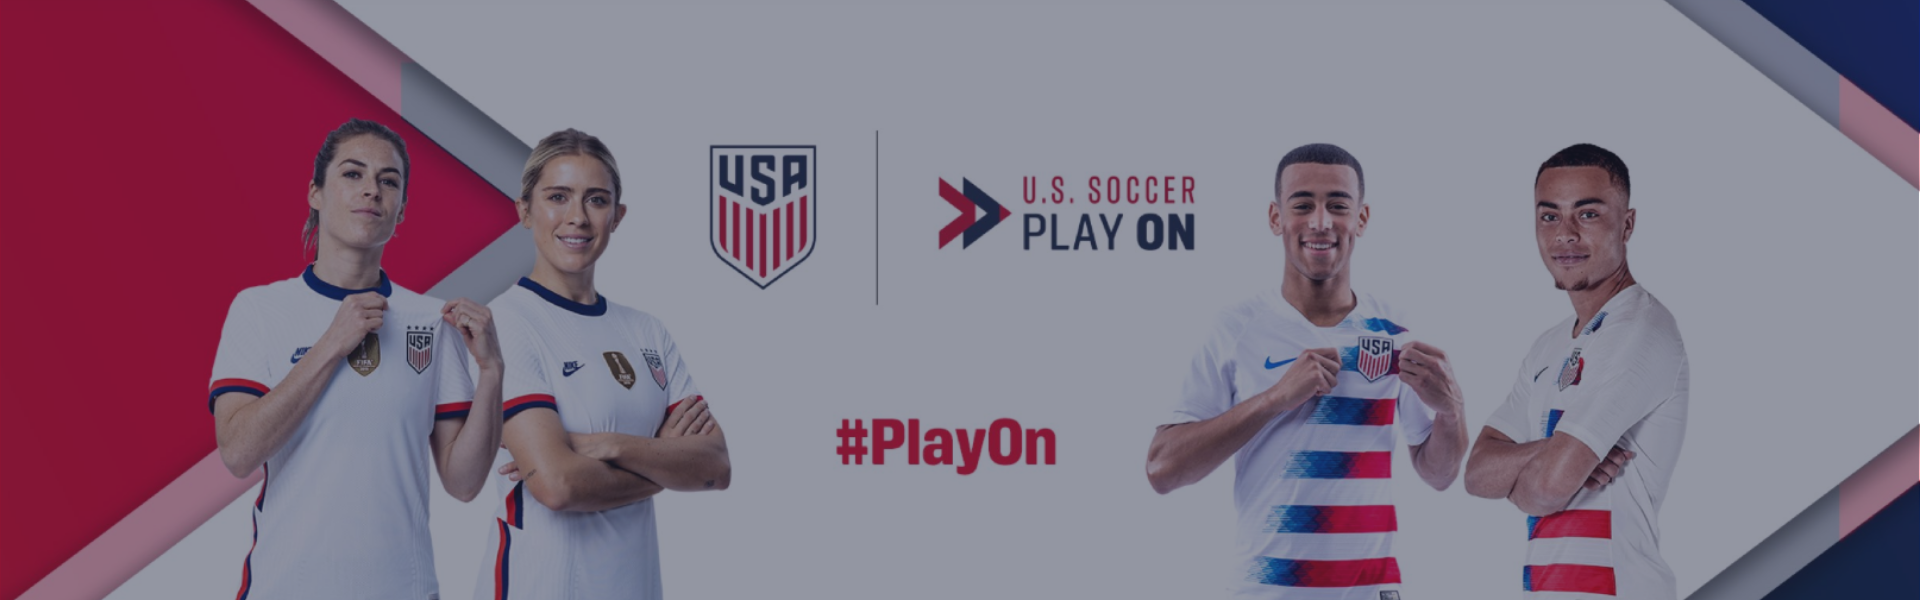 USSF_Return_to_Play_Home_Page_Image